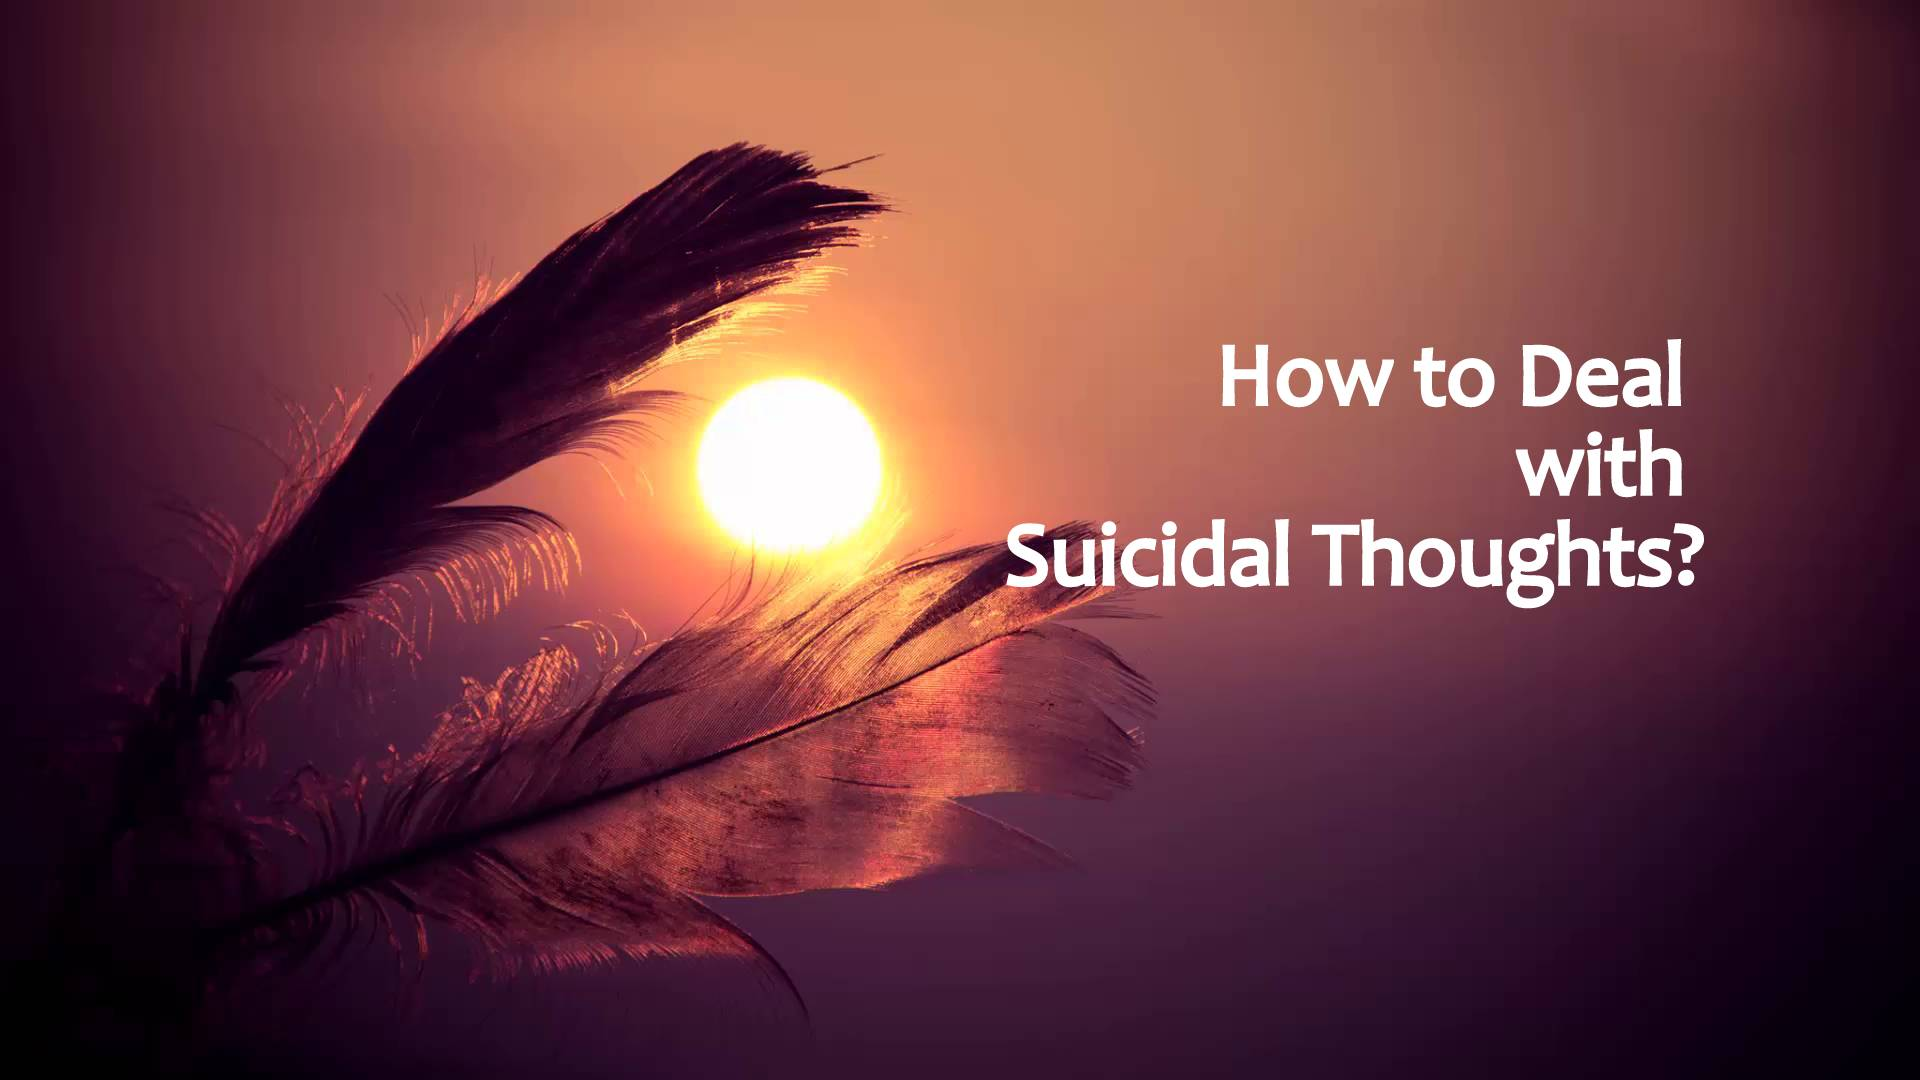 How To Deal With Suicidal Thoughtsq on Explain Spirit Soul Body